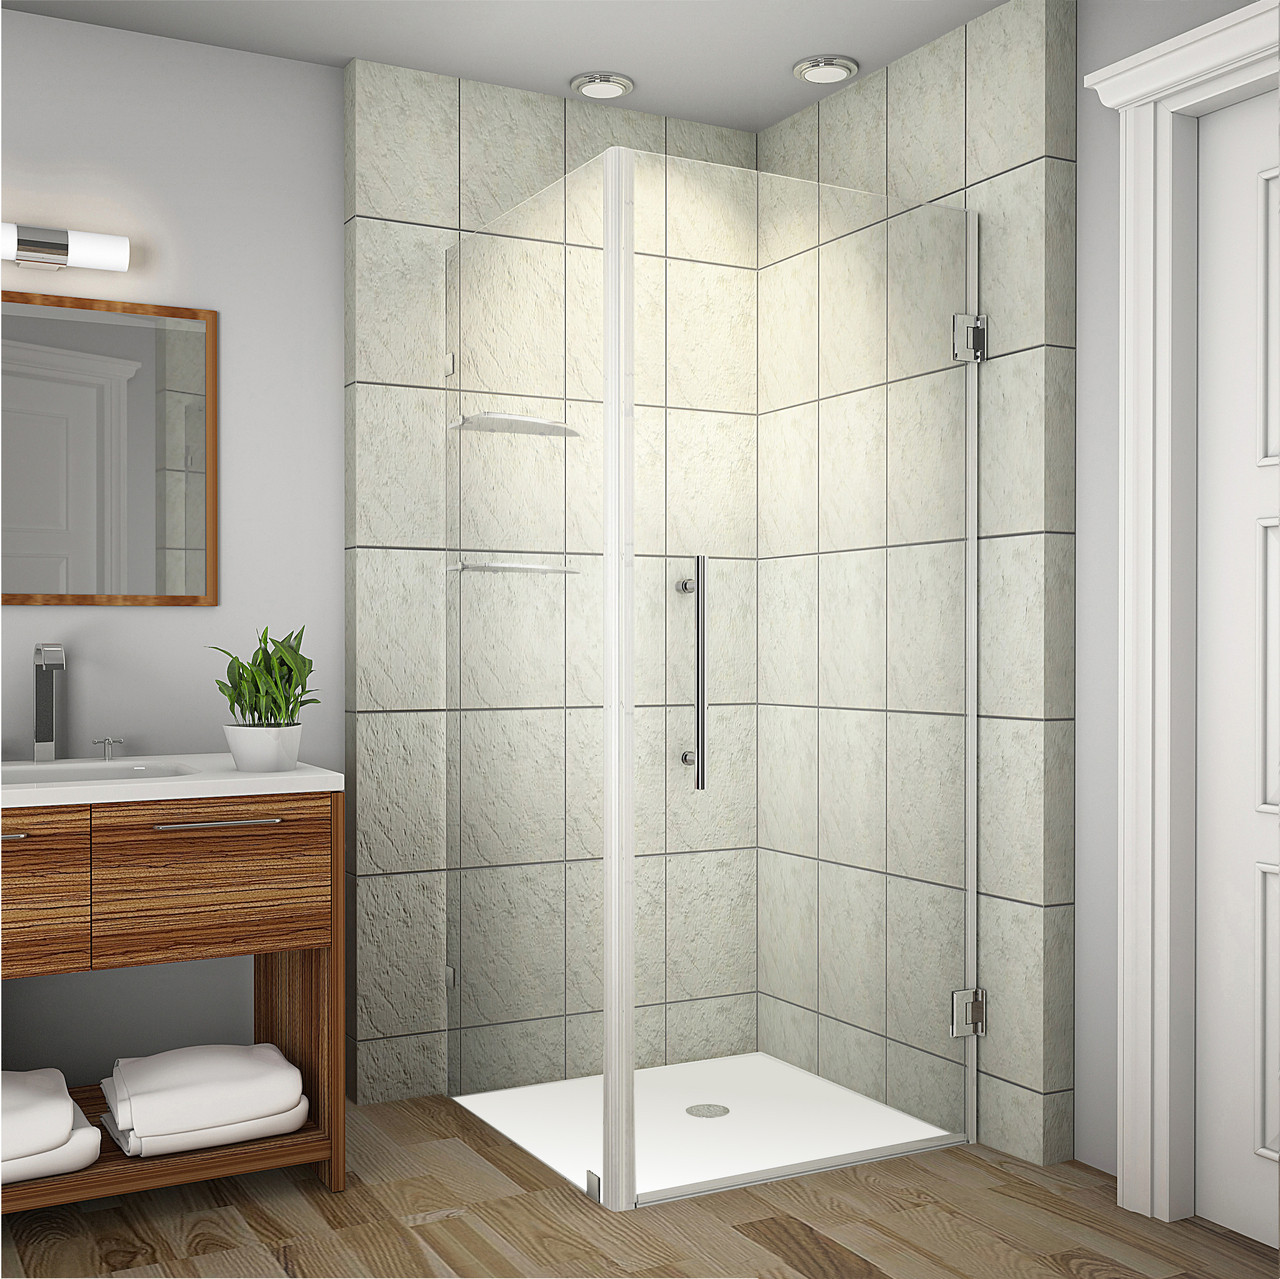 Aston Aquadica GS 32x32 Corner Frameless Square Shower Enclosure SEN993 CH 32